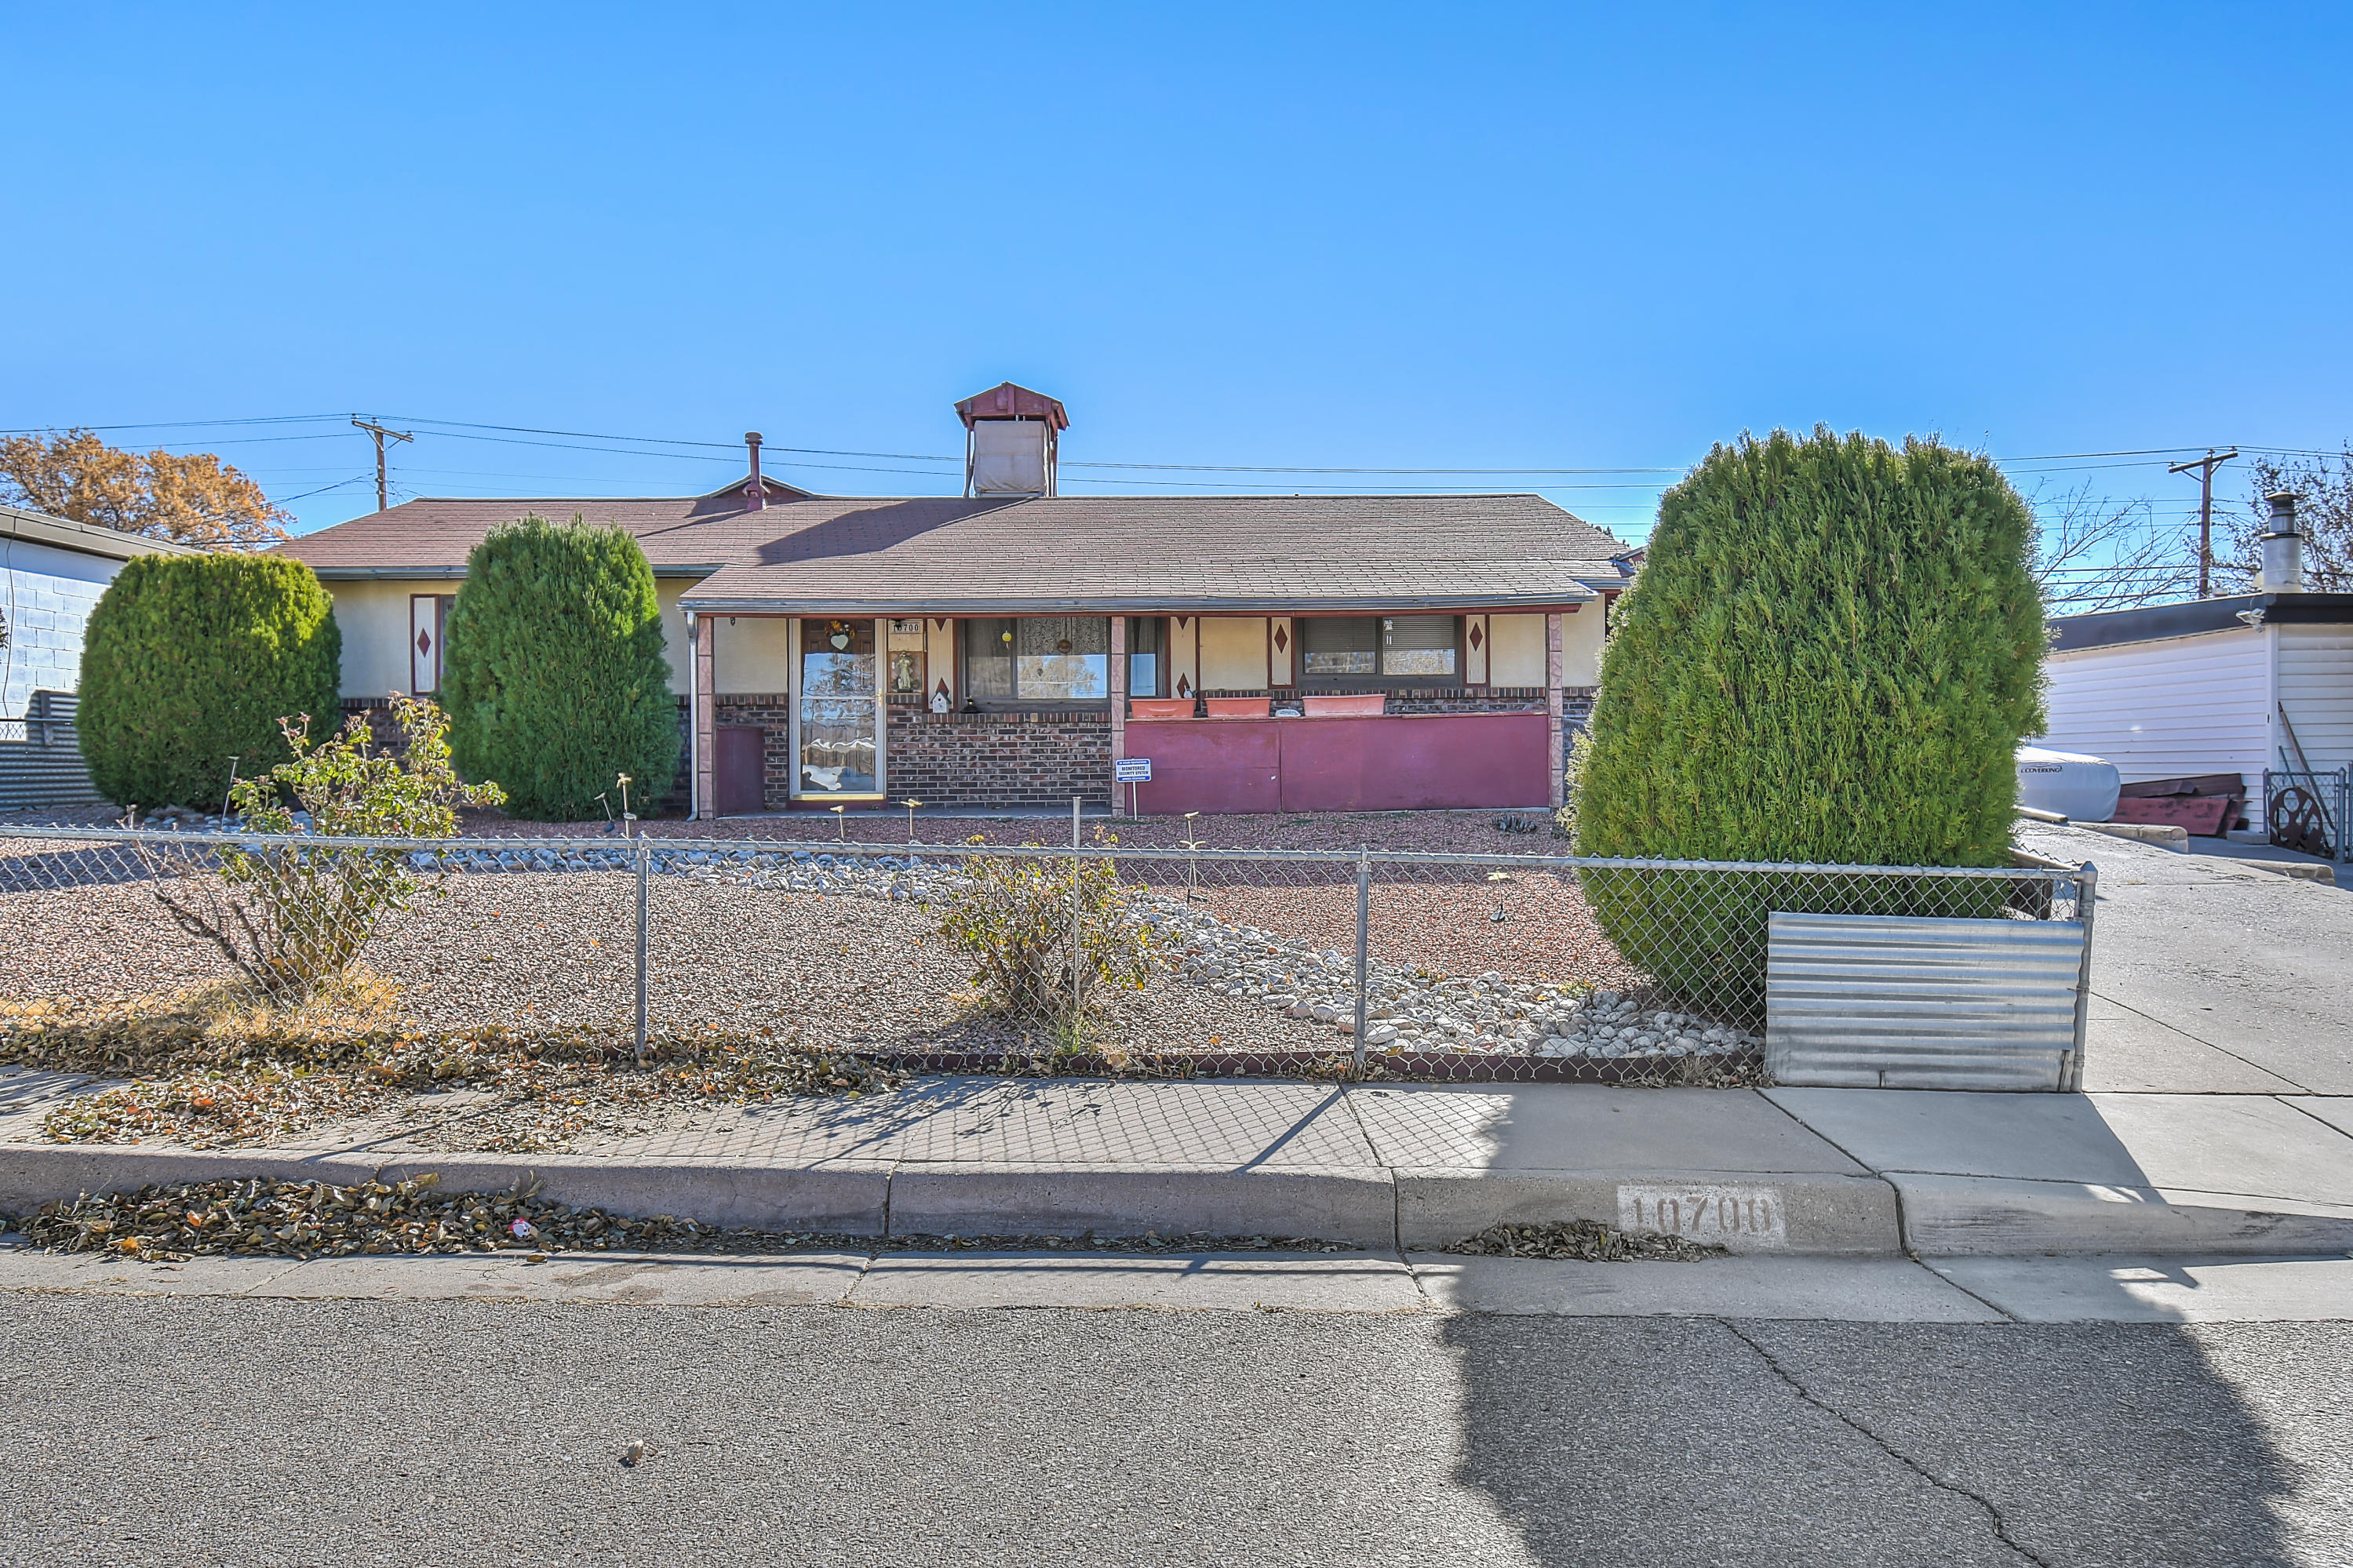 A true gem in thee NE heights;  3 bed 2 bath;  A great starter home or great for investors.  A MUST SEE